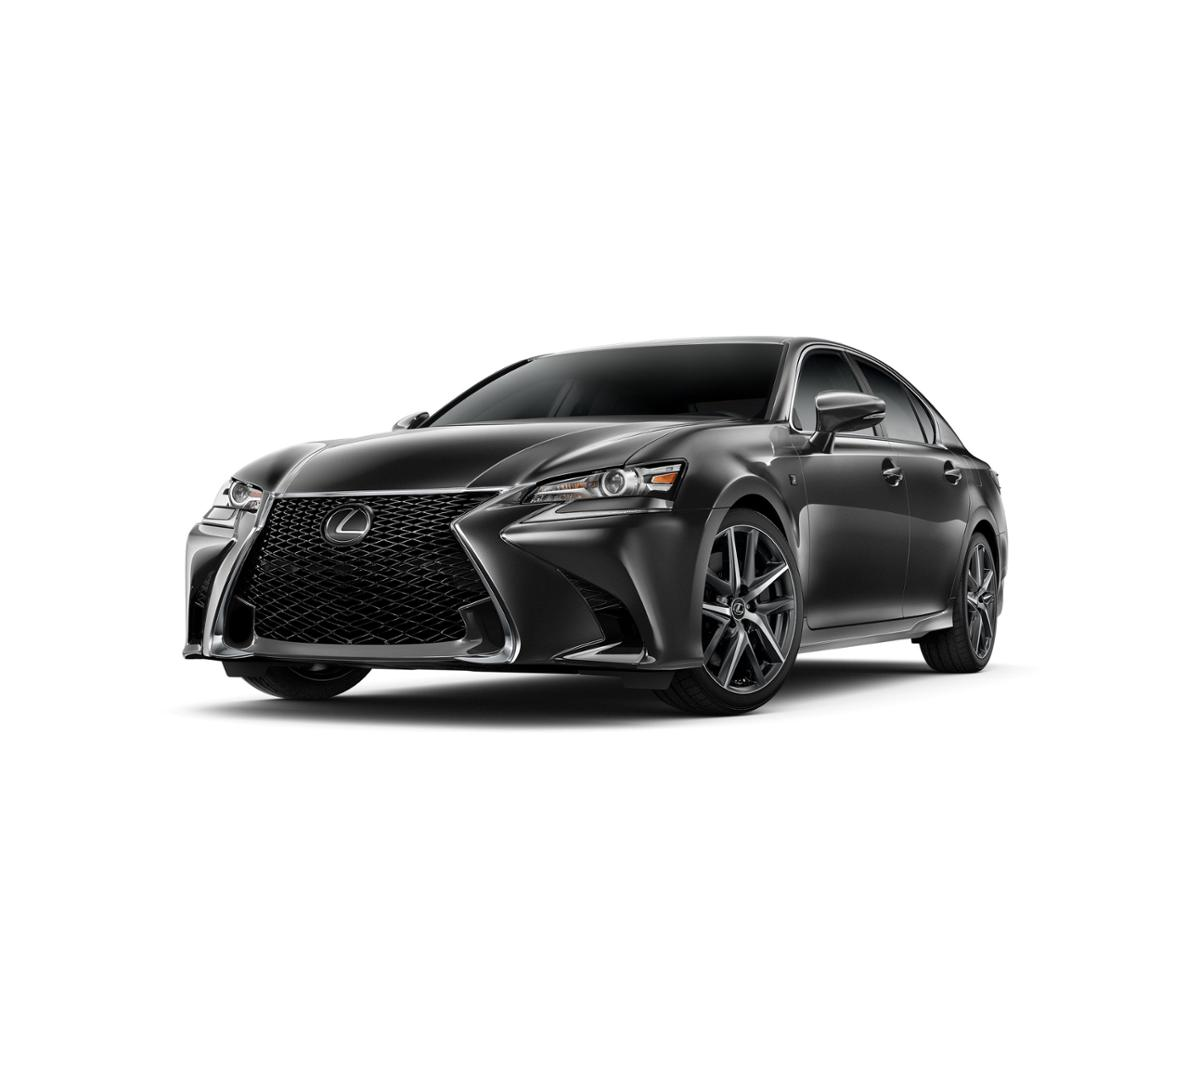 2019 Lexus GS 350 Vehicle Photo in Evansville, IN 47715